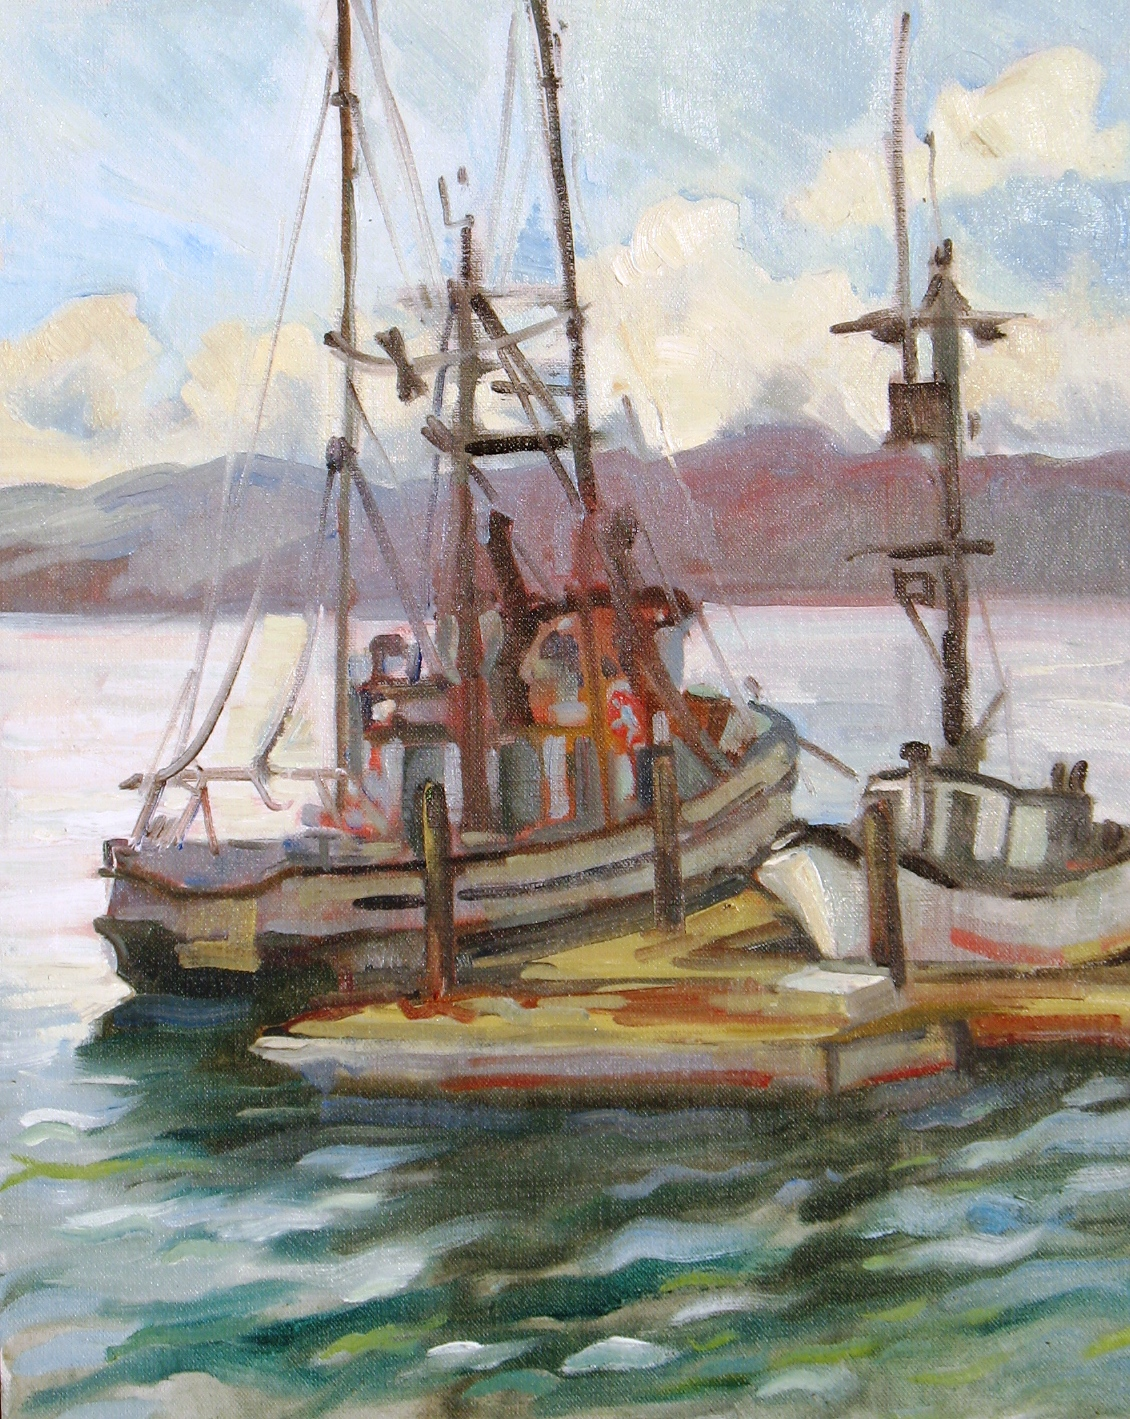 Mollie, Morro Bay, 20 x 16 inches, oil on canvas, 2011 - UNAVAILABLE